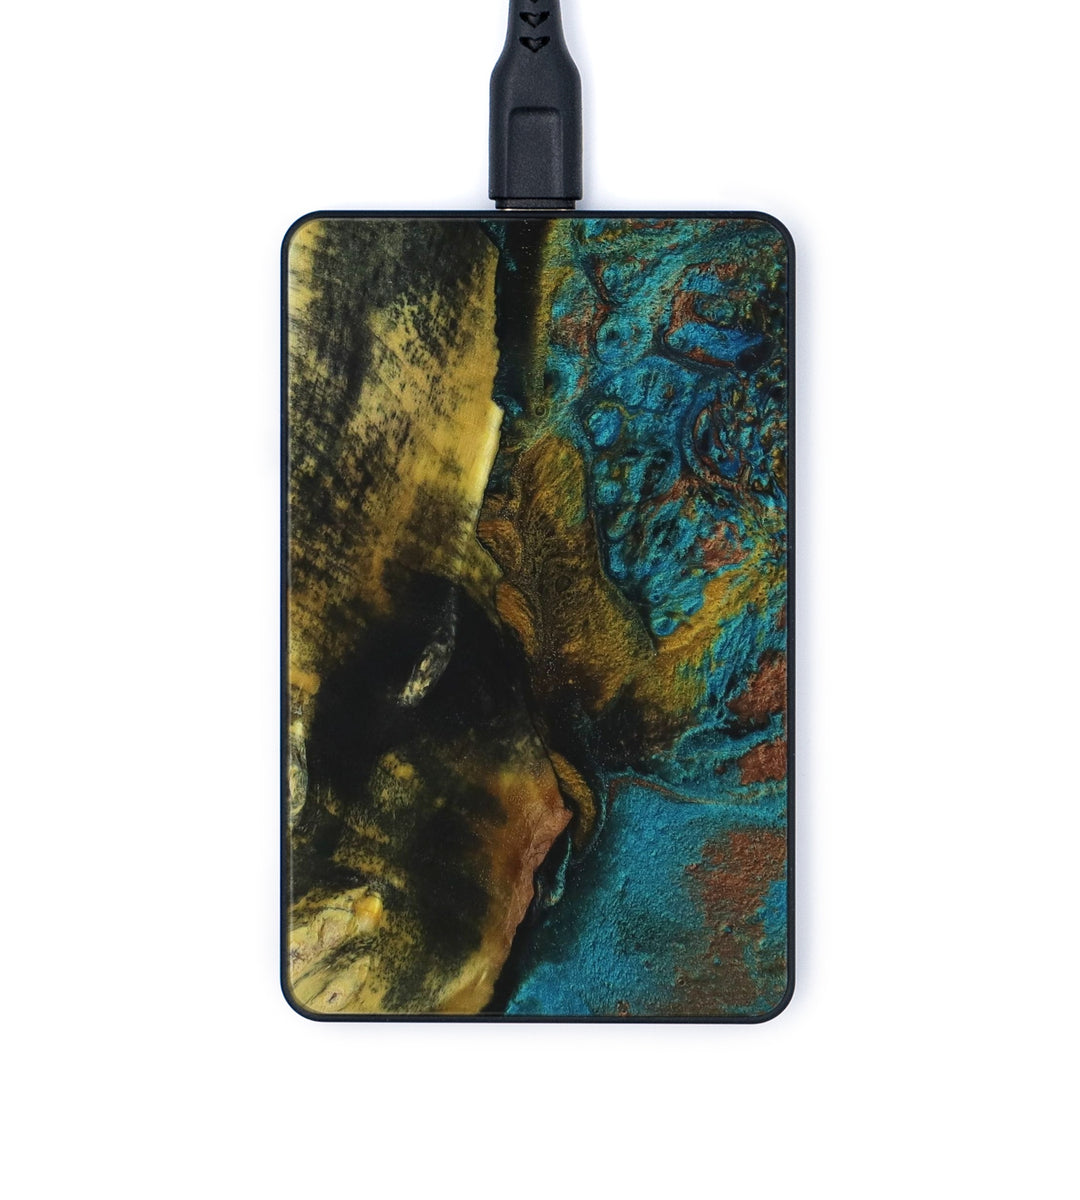 Thin Wood+Resin Wireless Charger - Merdia (Teal & Gold, 347861)